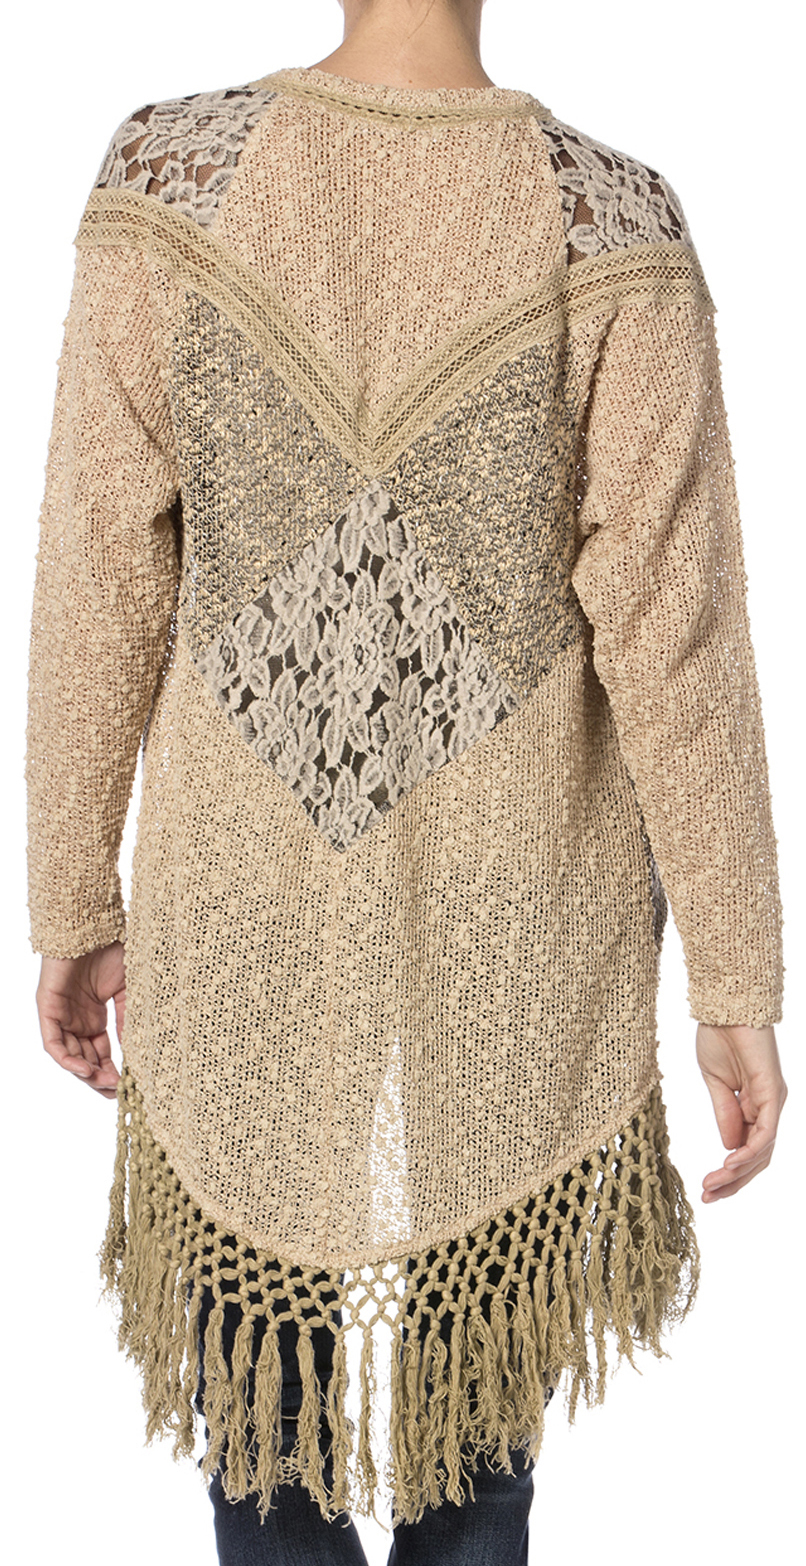 Miss Me Mix Match Lace Knit Cardigan Sweater - Country Outfitter